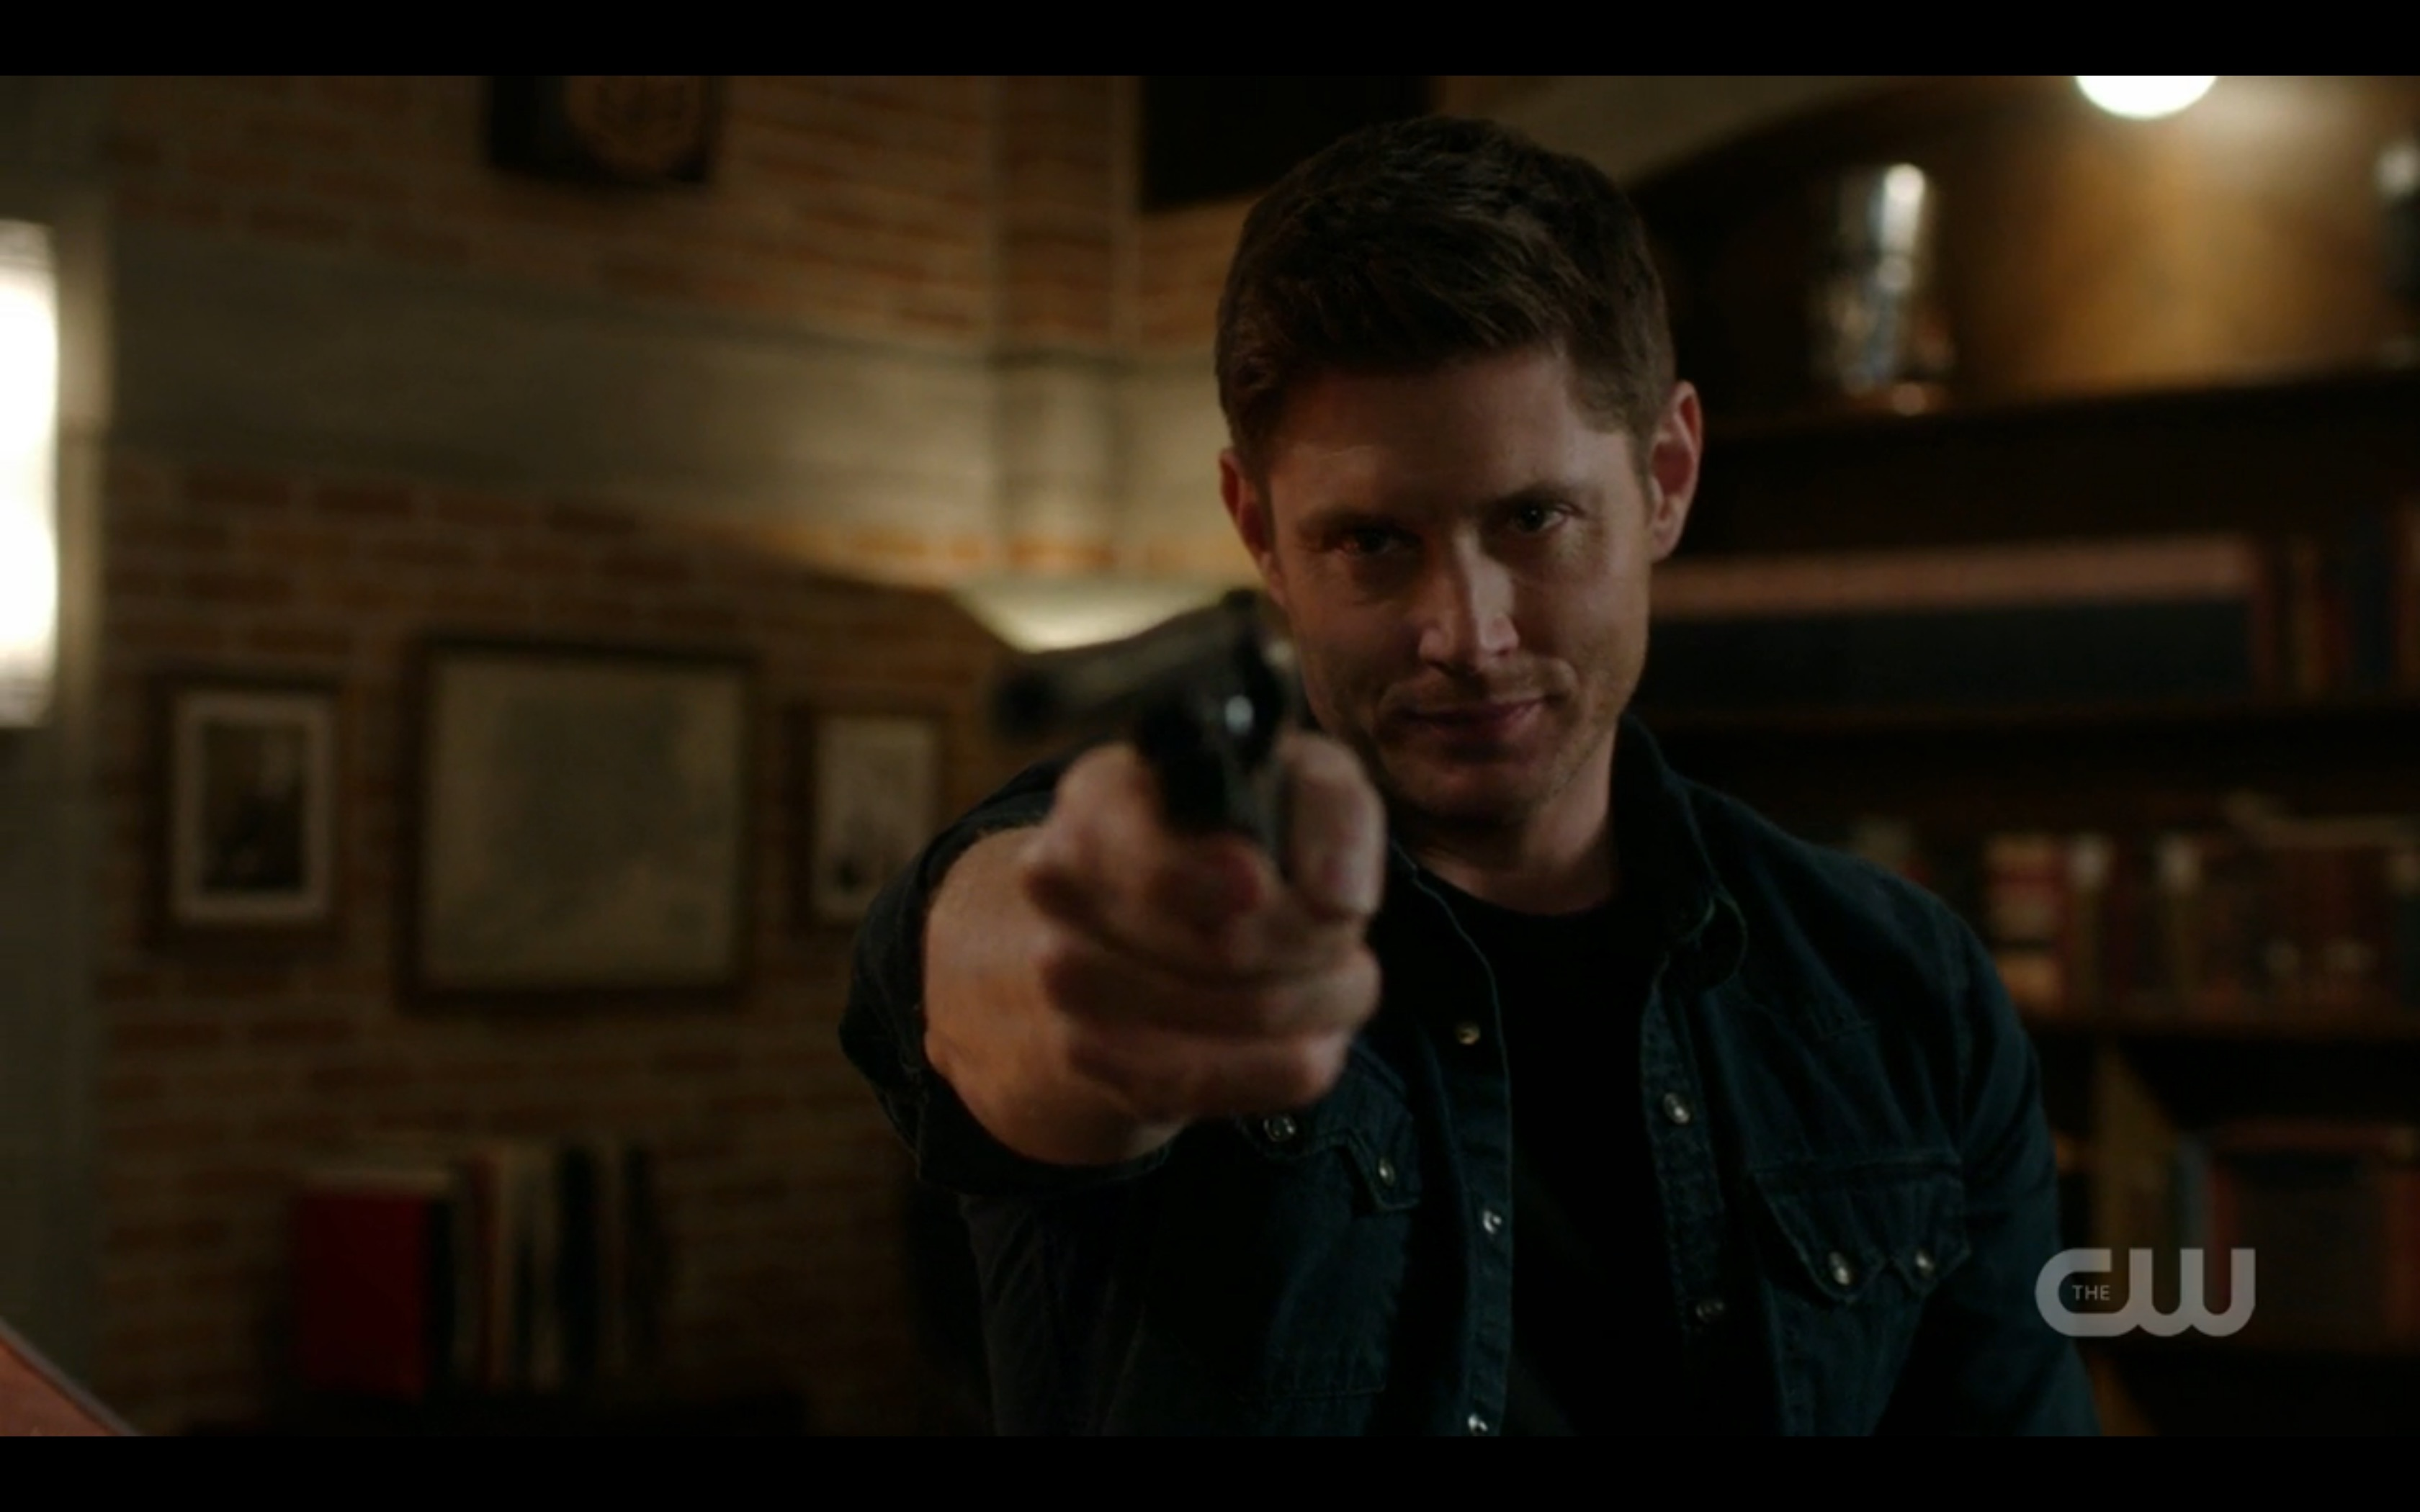 supernatural british invasion is a true action invasion episode 2017 images